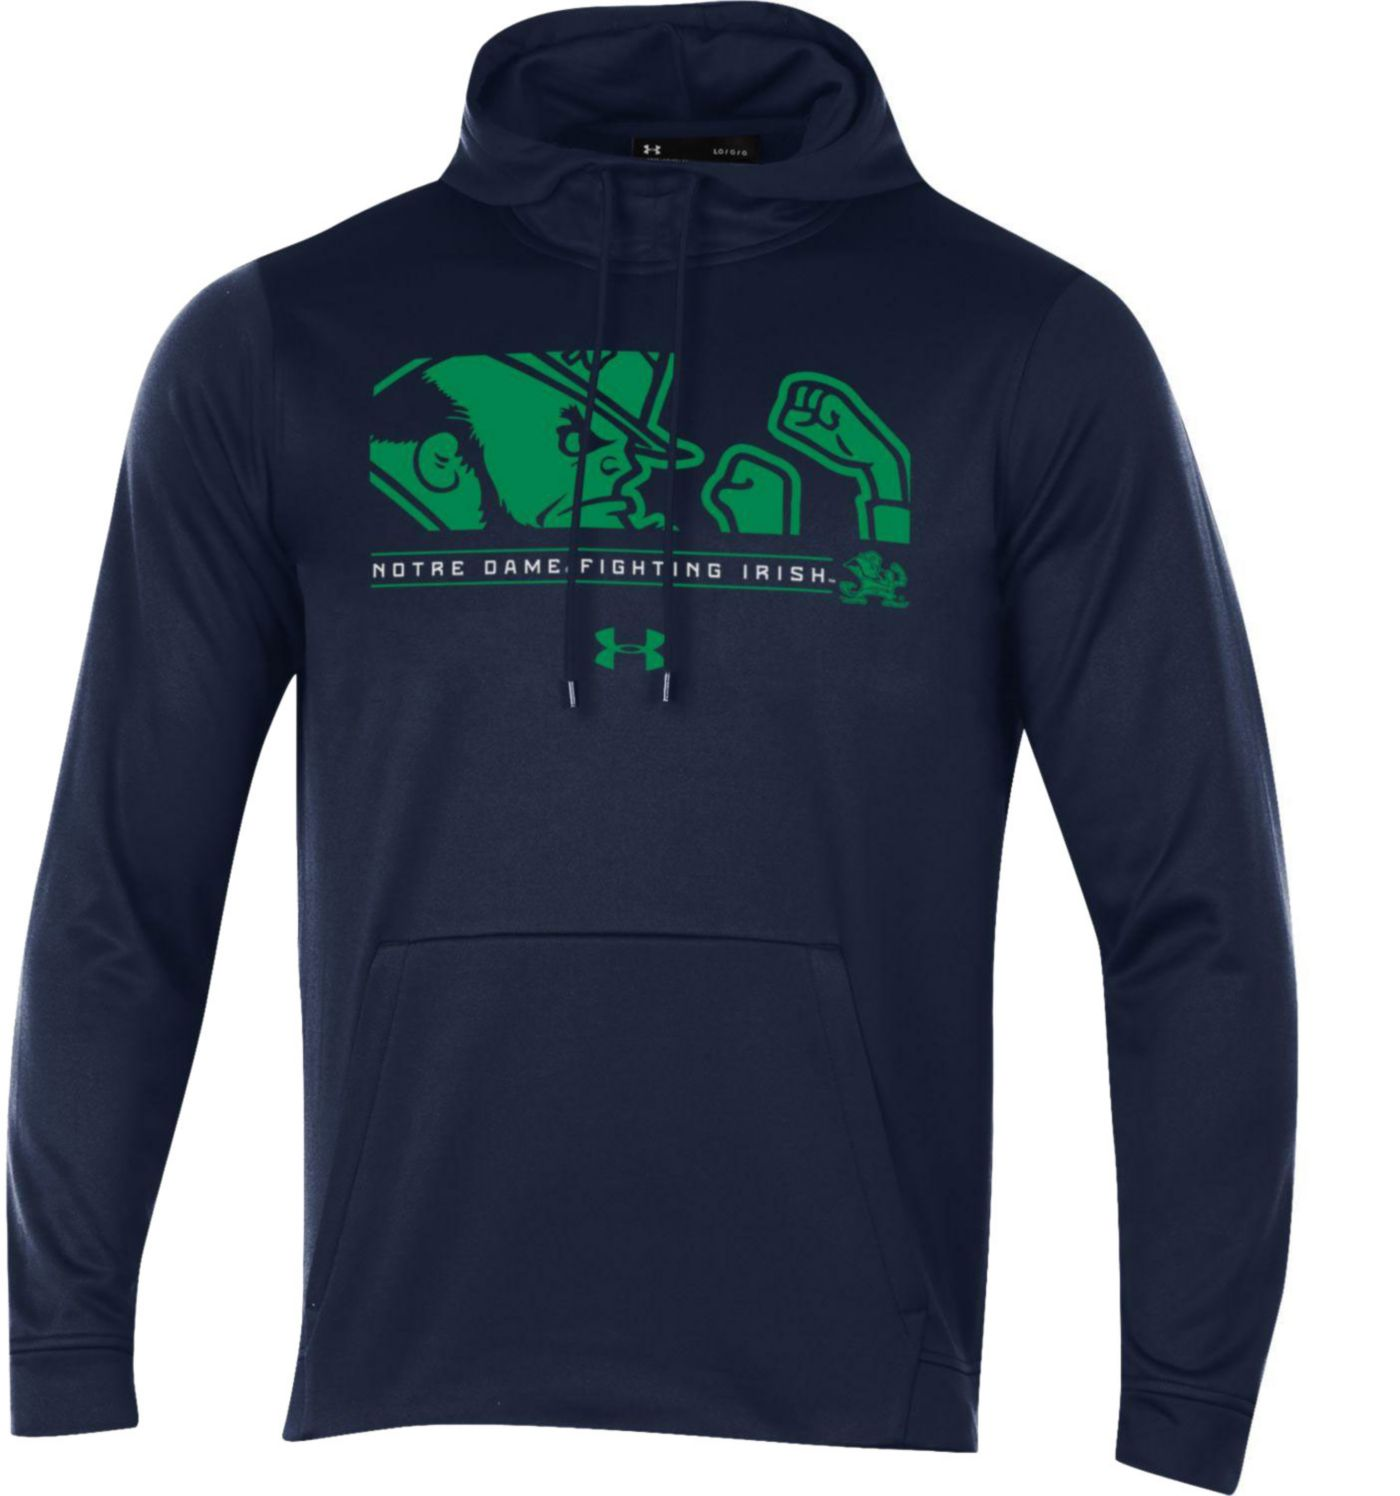 Under Armour Men's Notre Dame Fighting Irish Navy Armourfleece Pullover Hoodie